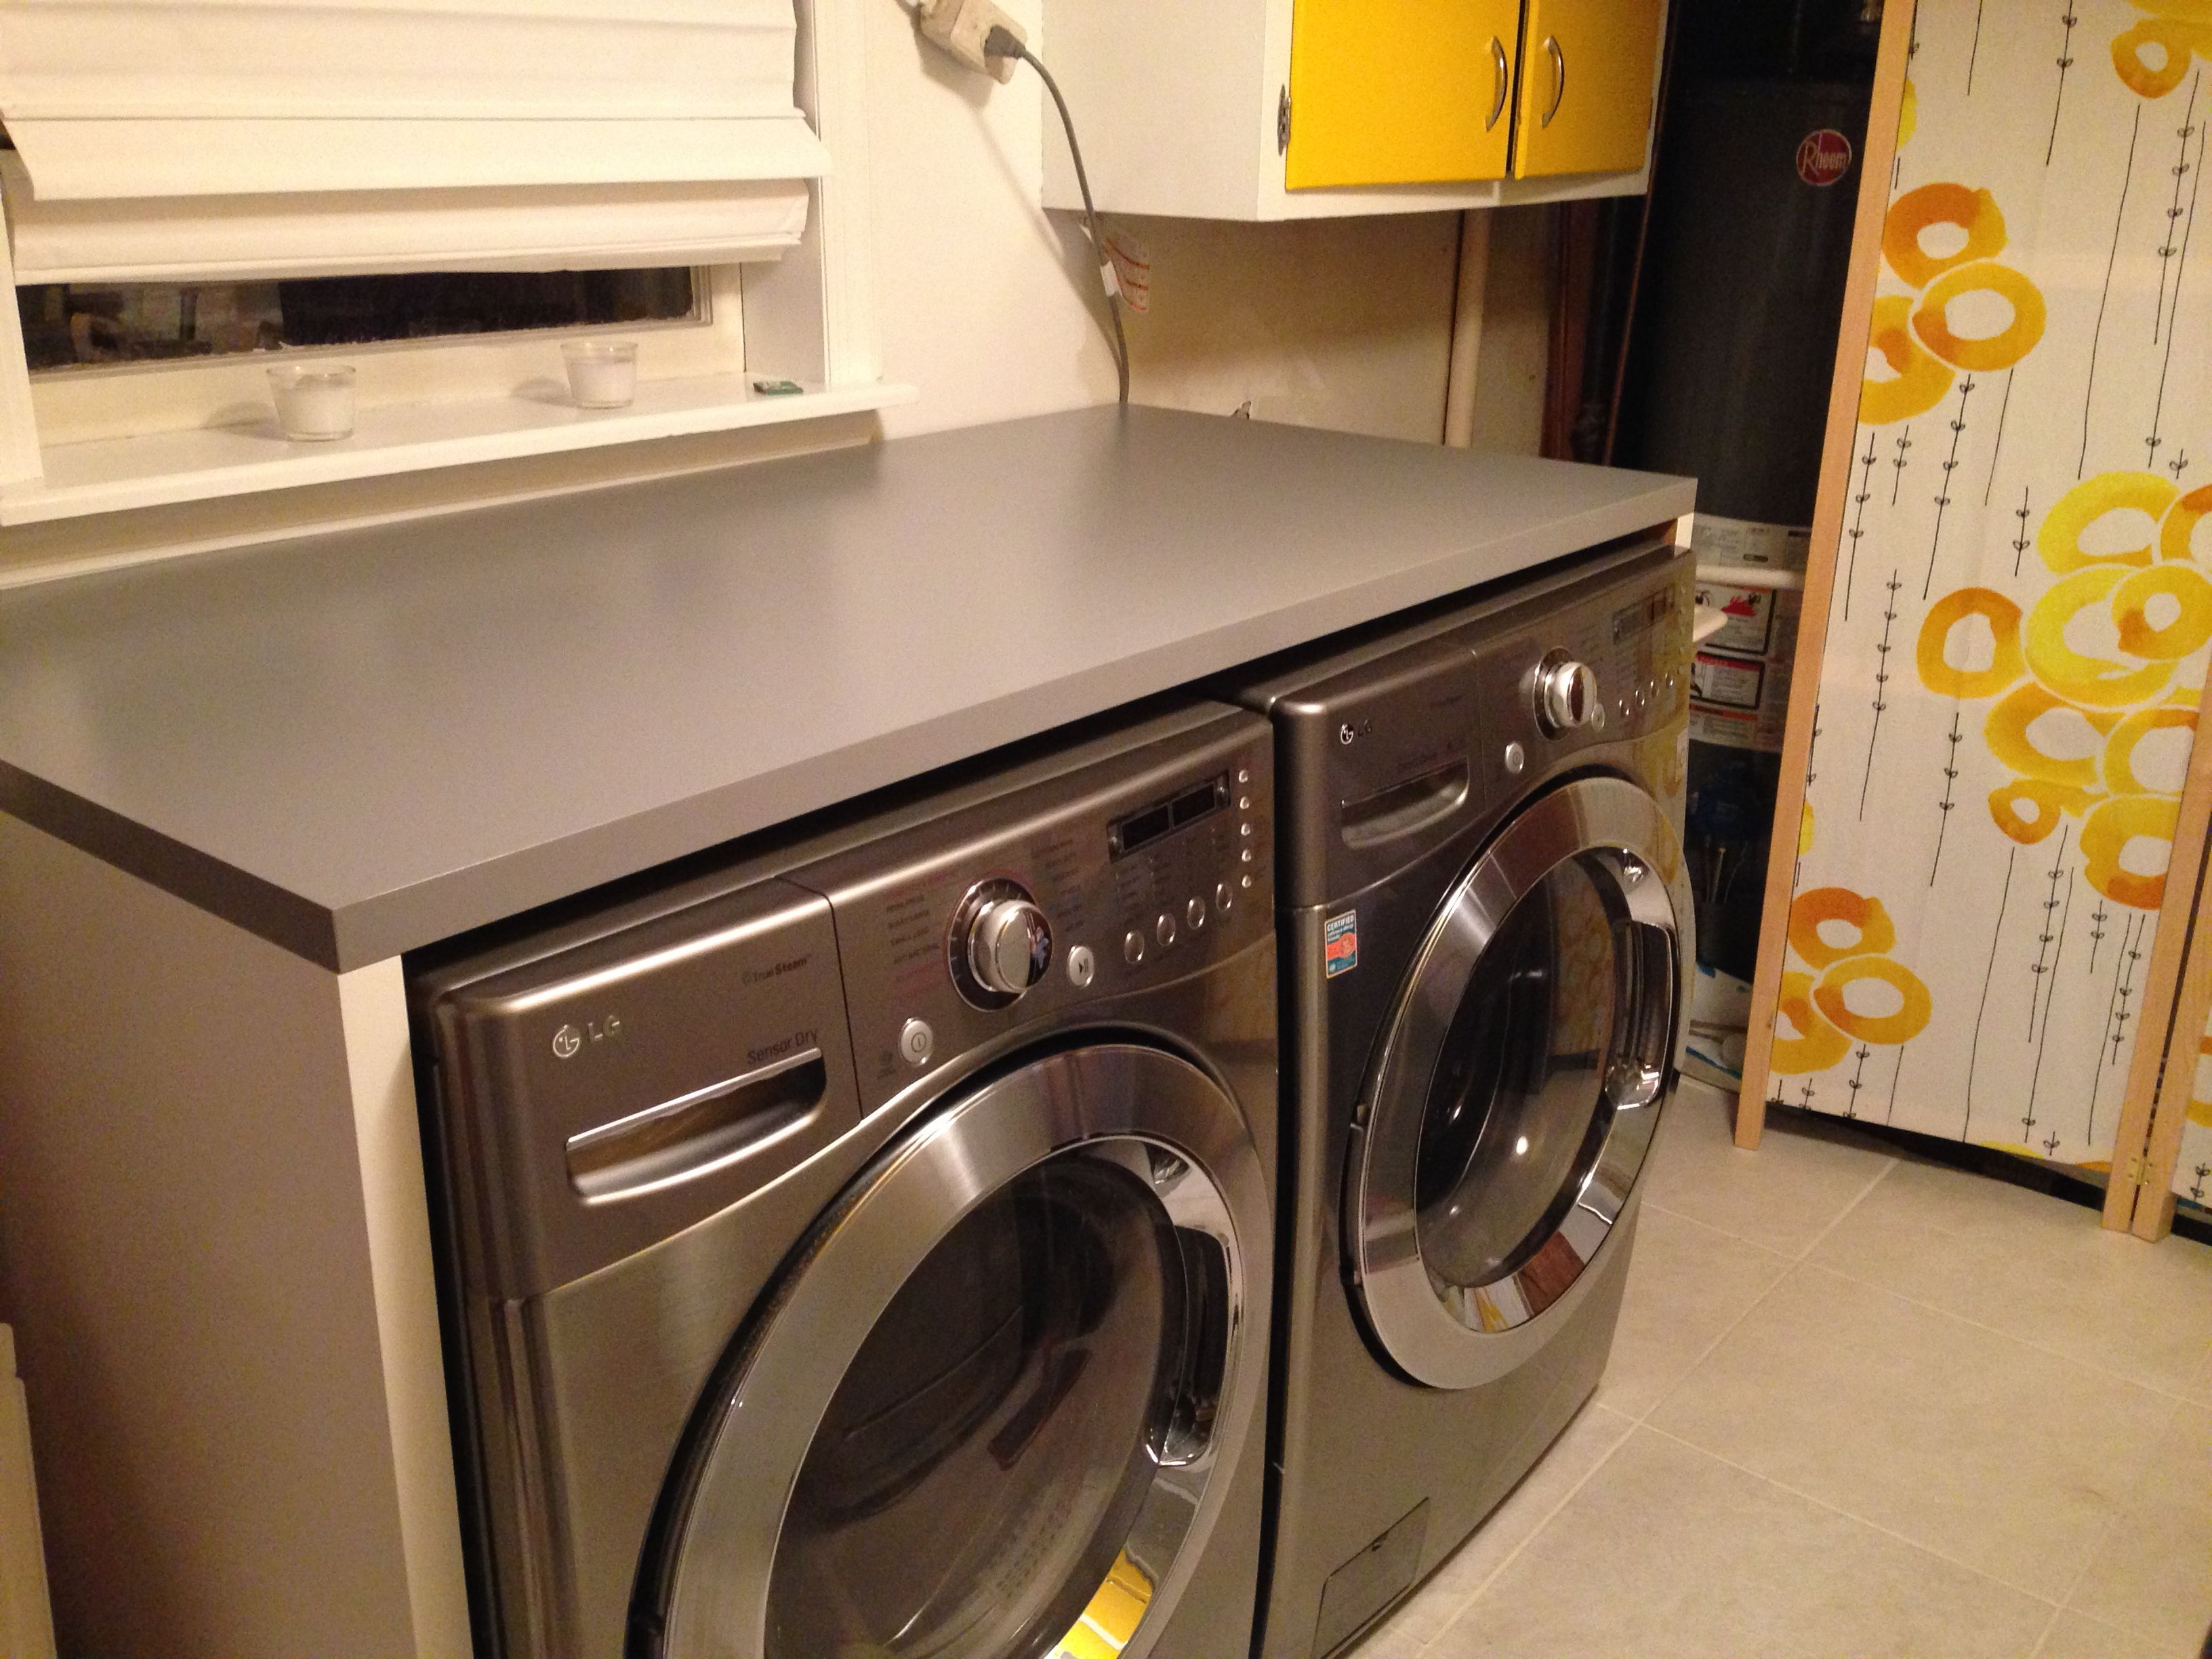 Ikea Linnmon Tabletops To Build Counter Around Washer And Dryer Genius